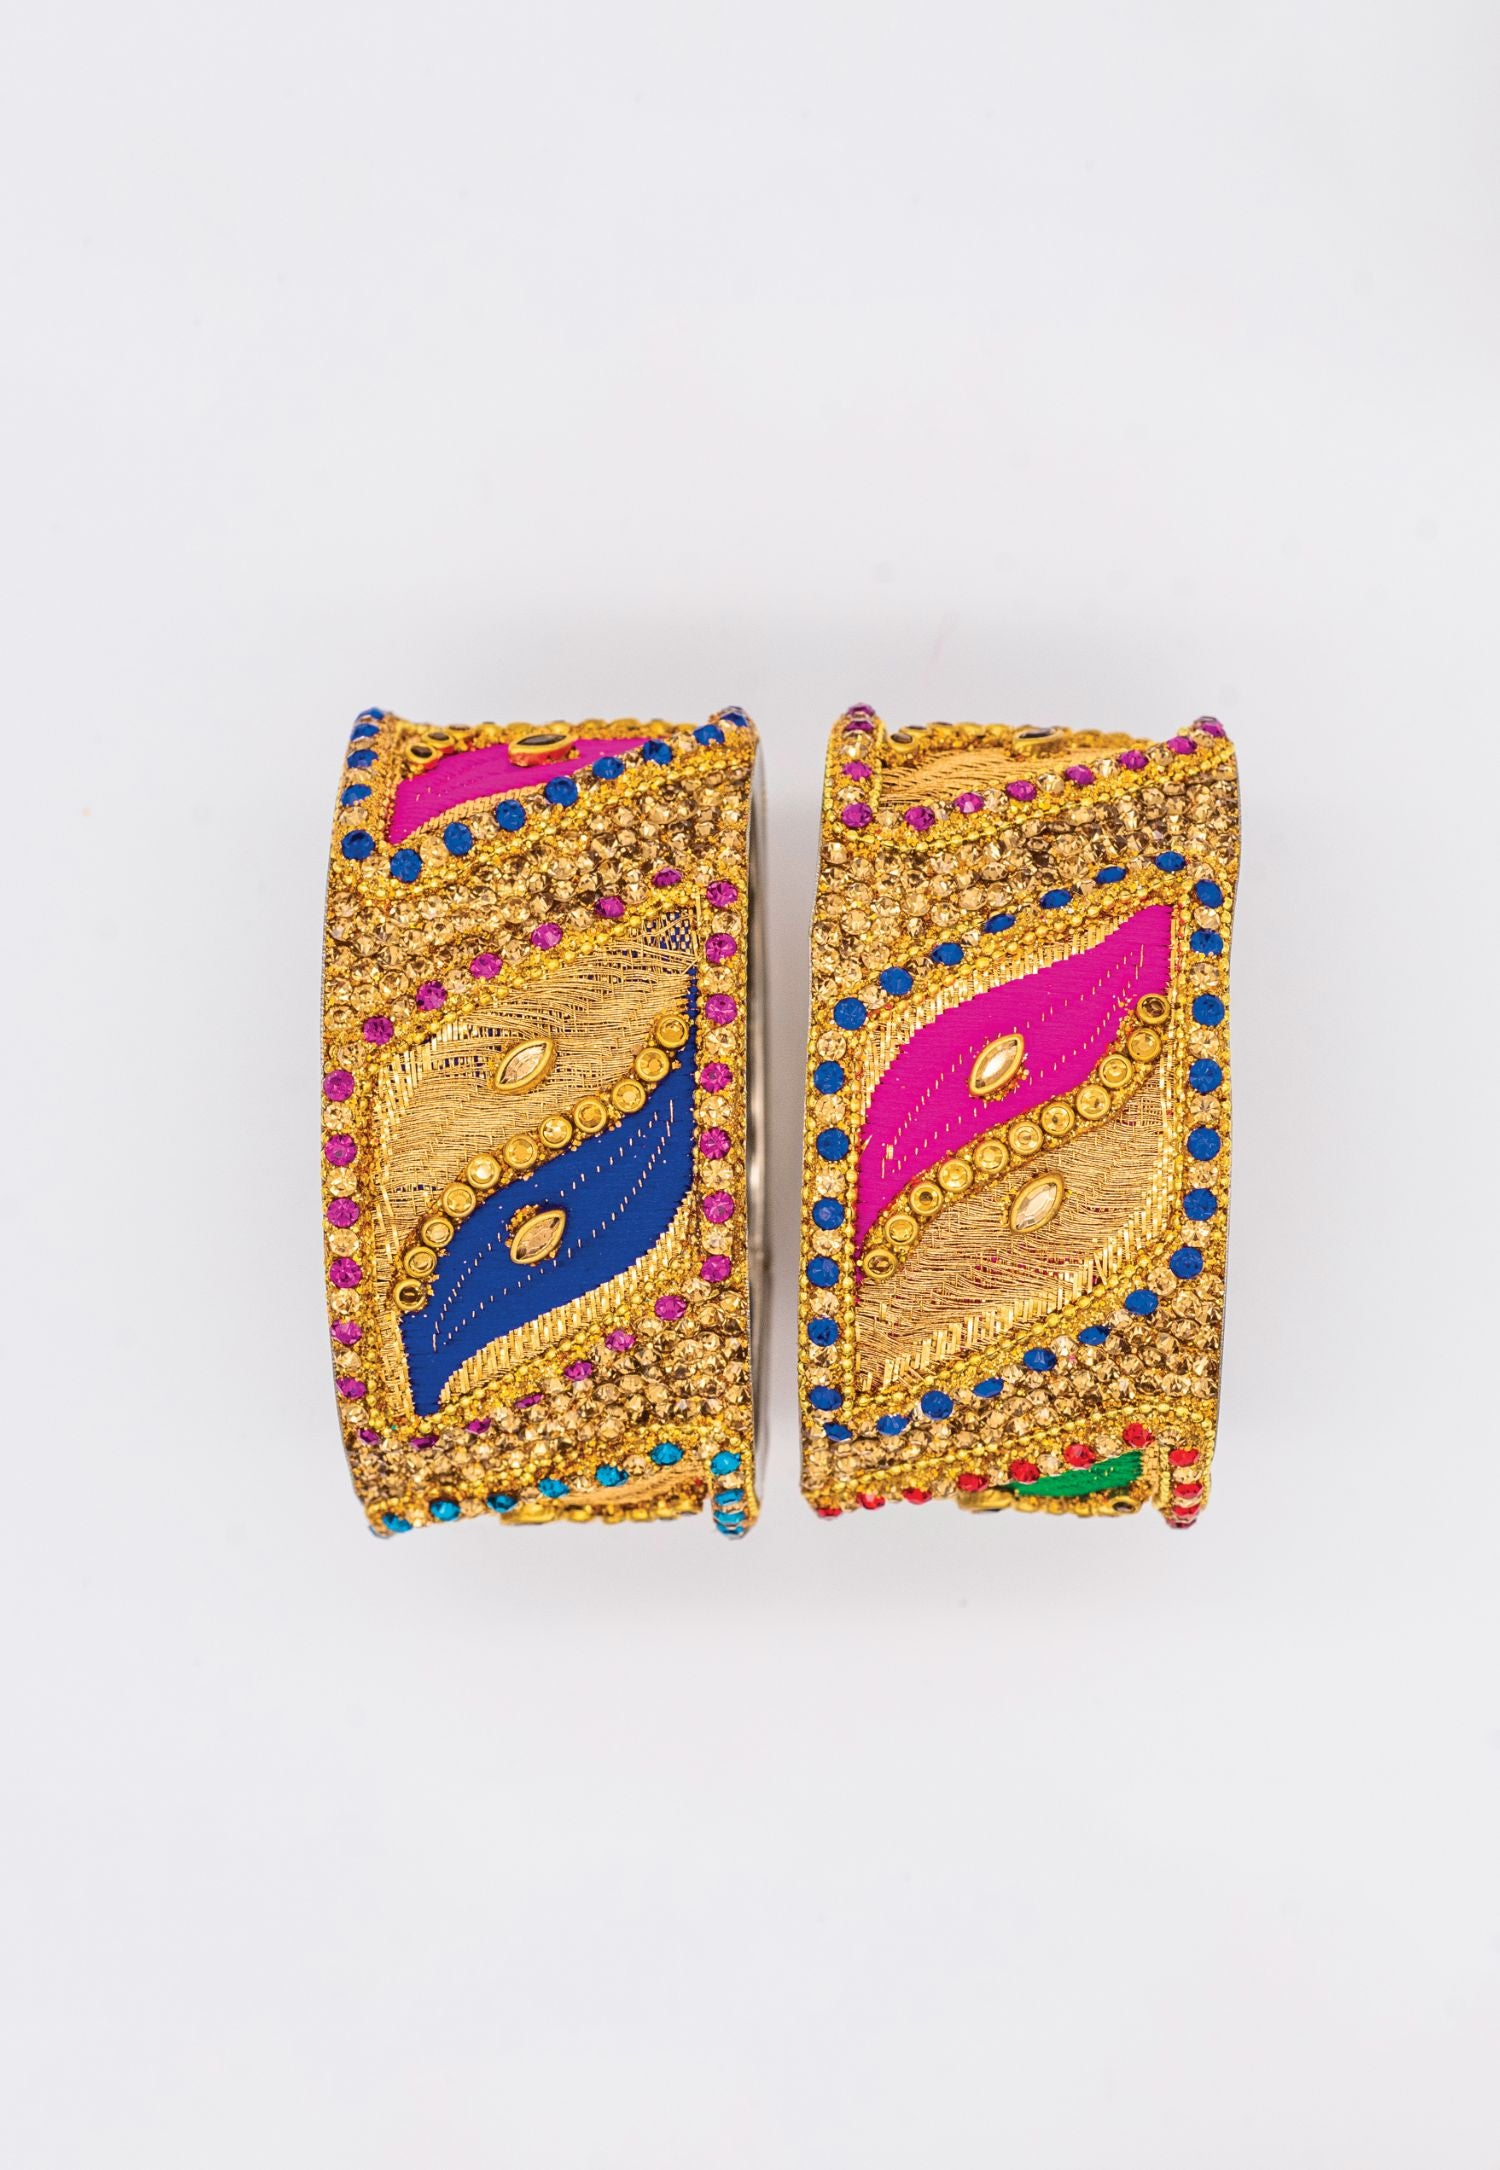 GOLD BANGLES WITH ROYAL BLUE AND PINK ENAMEL WAVE PATTERN